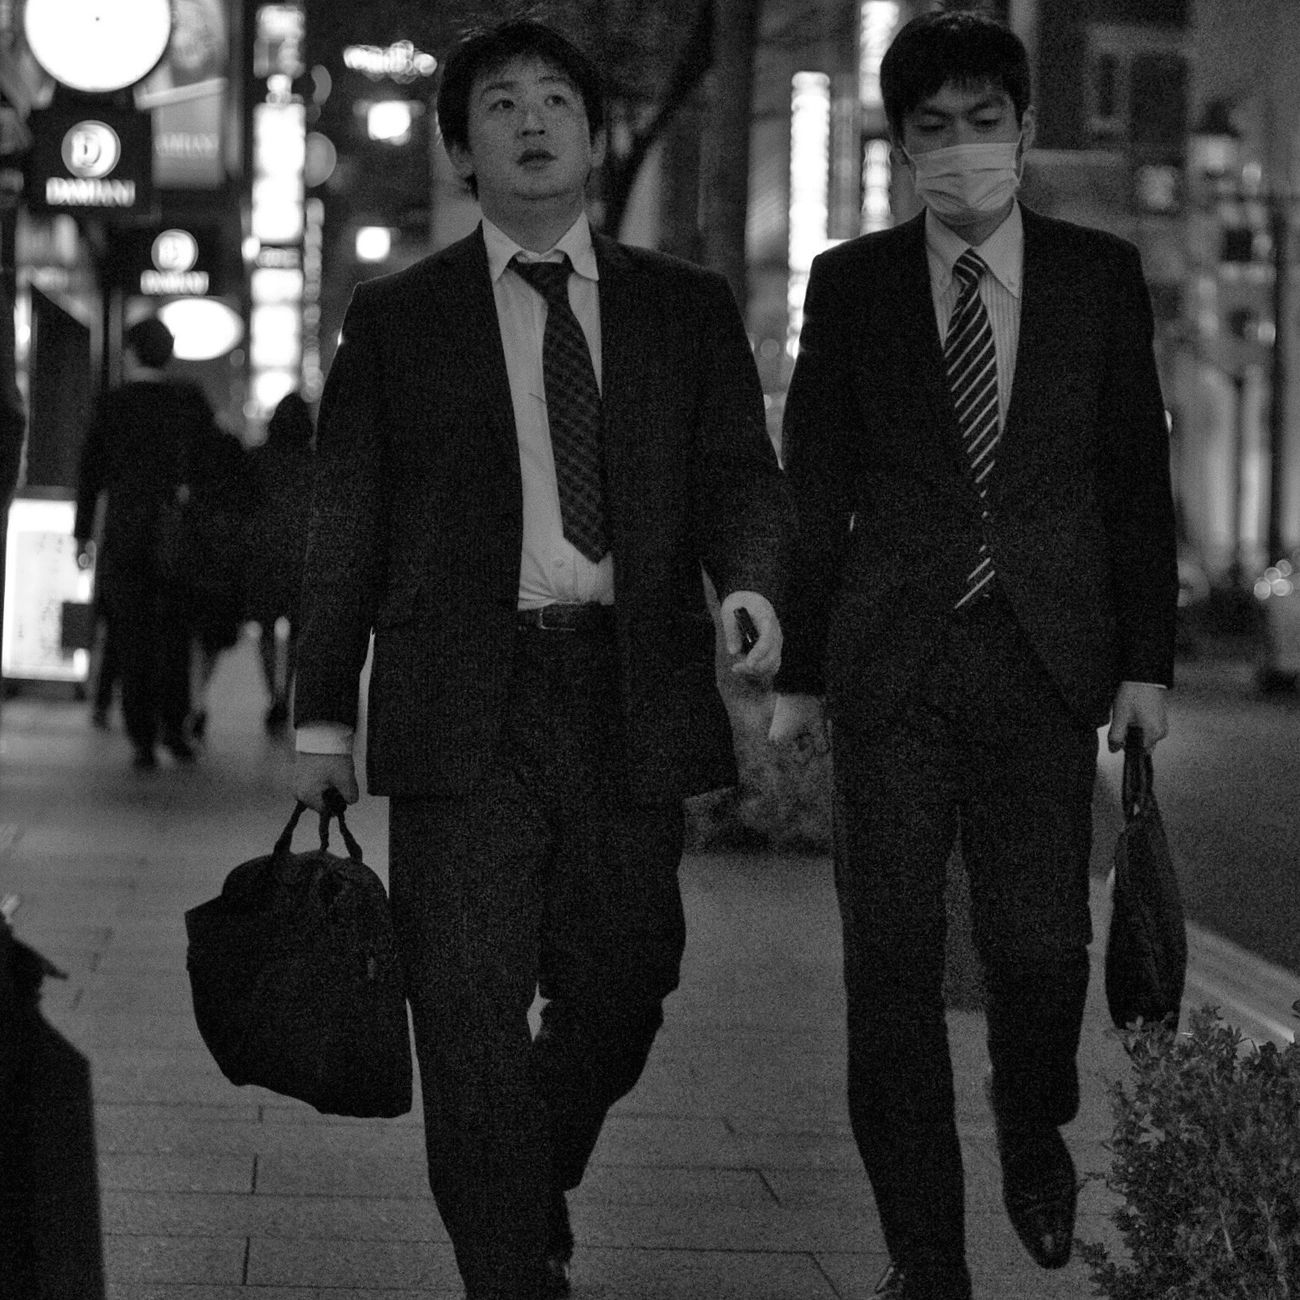 Full Suit Night Businessman Suit People City Life Nightphotography Snapshot On The Road CityWalk Streetphotography_bw B&w Street Photography at Toranomon 虎ノ門 , Tokyo Japan